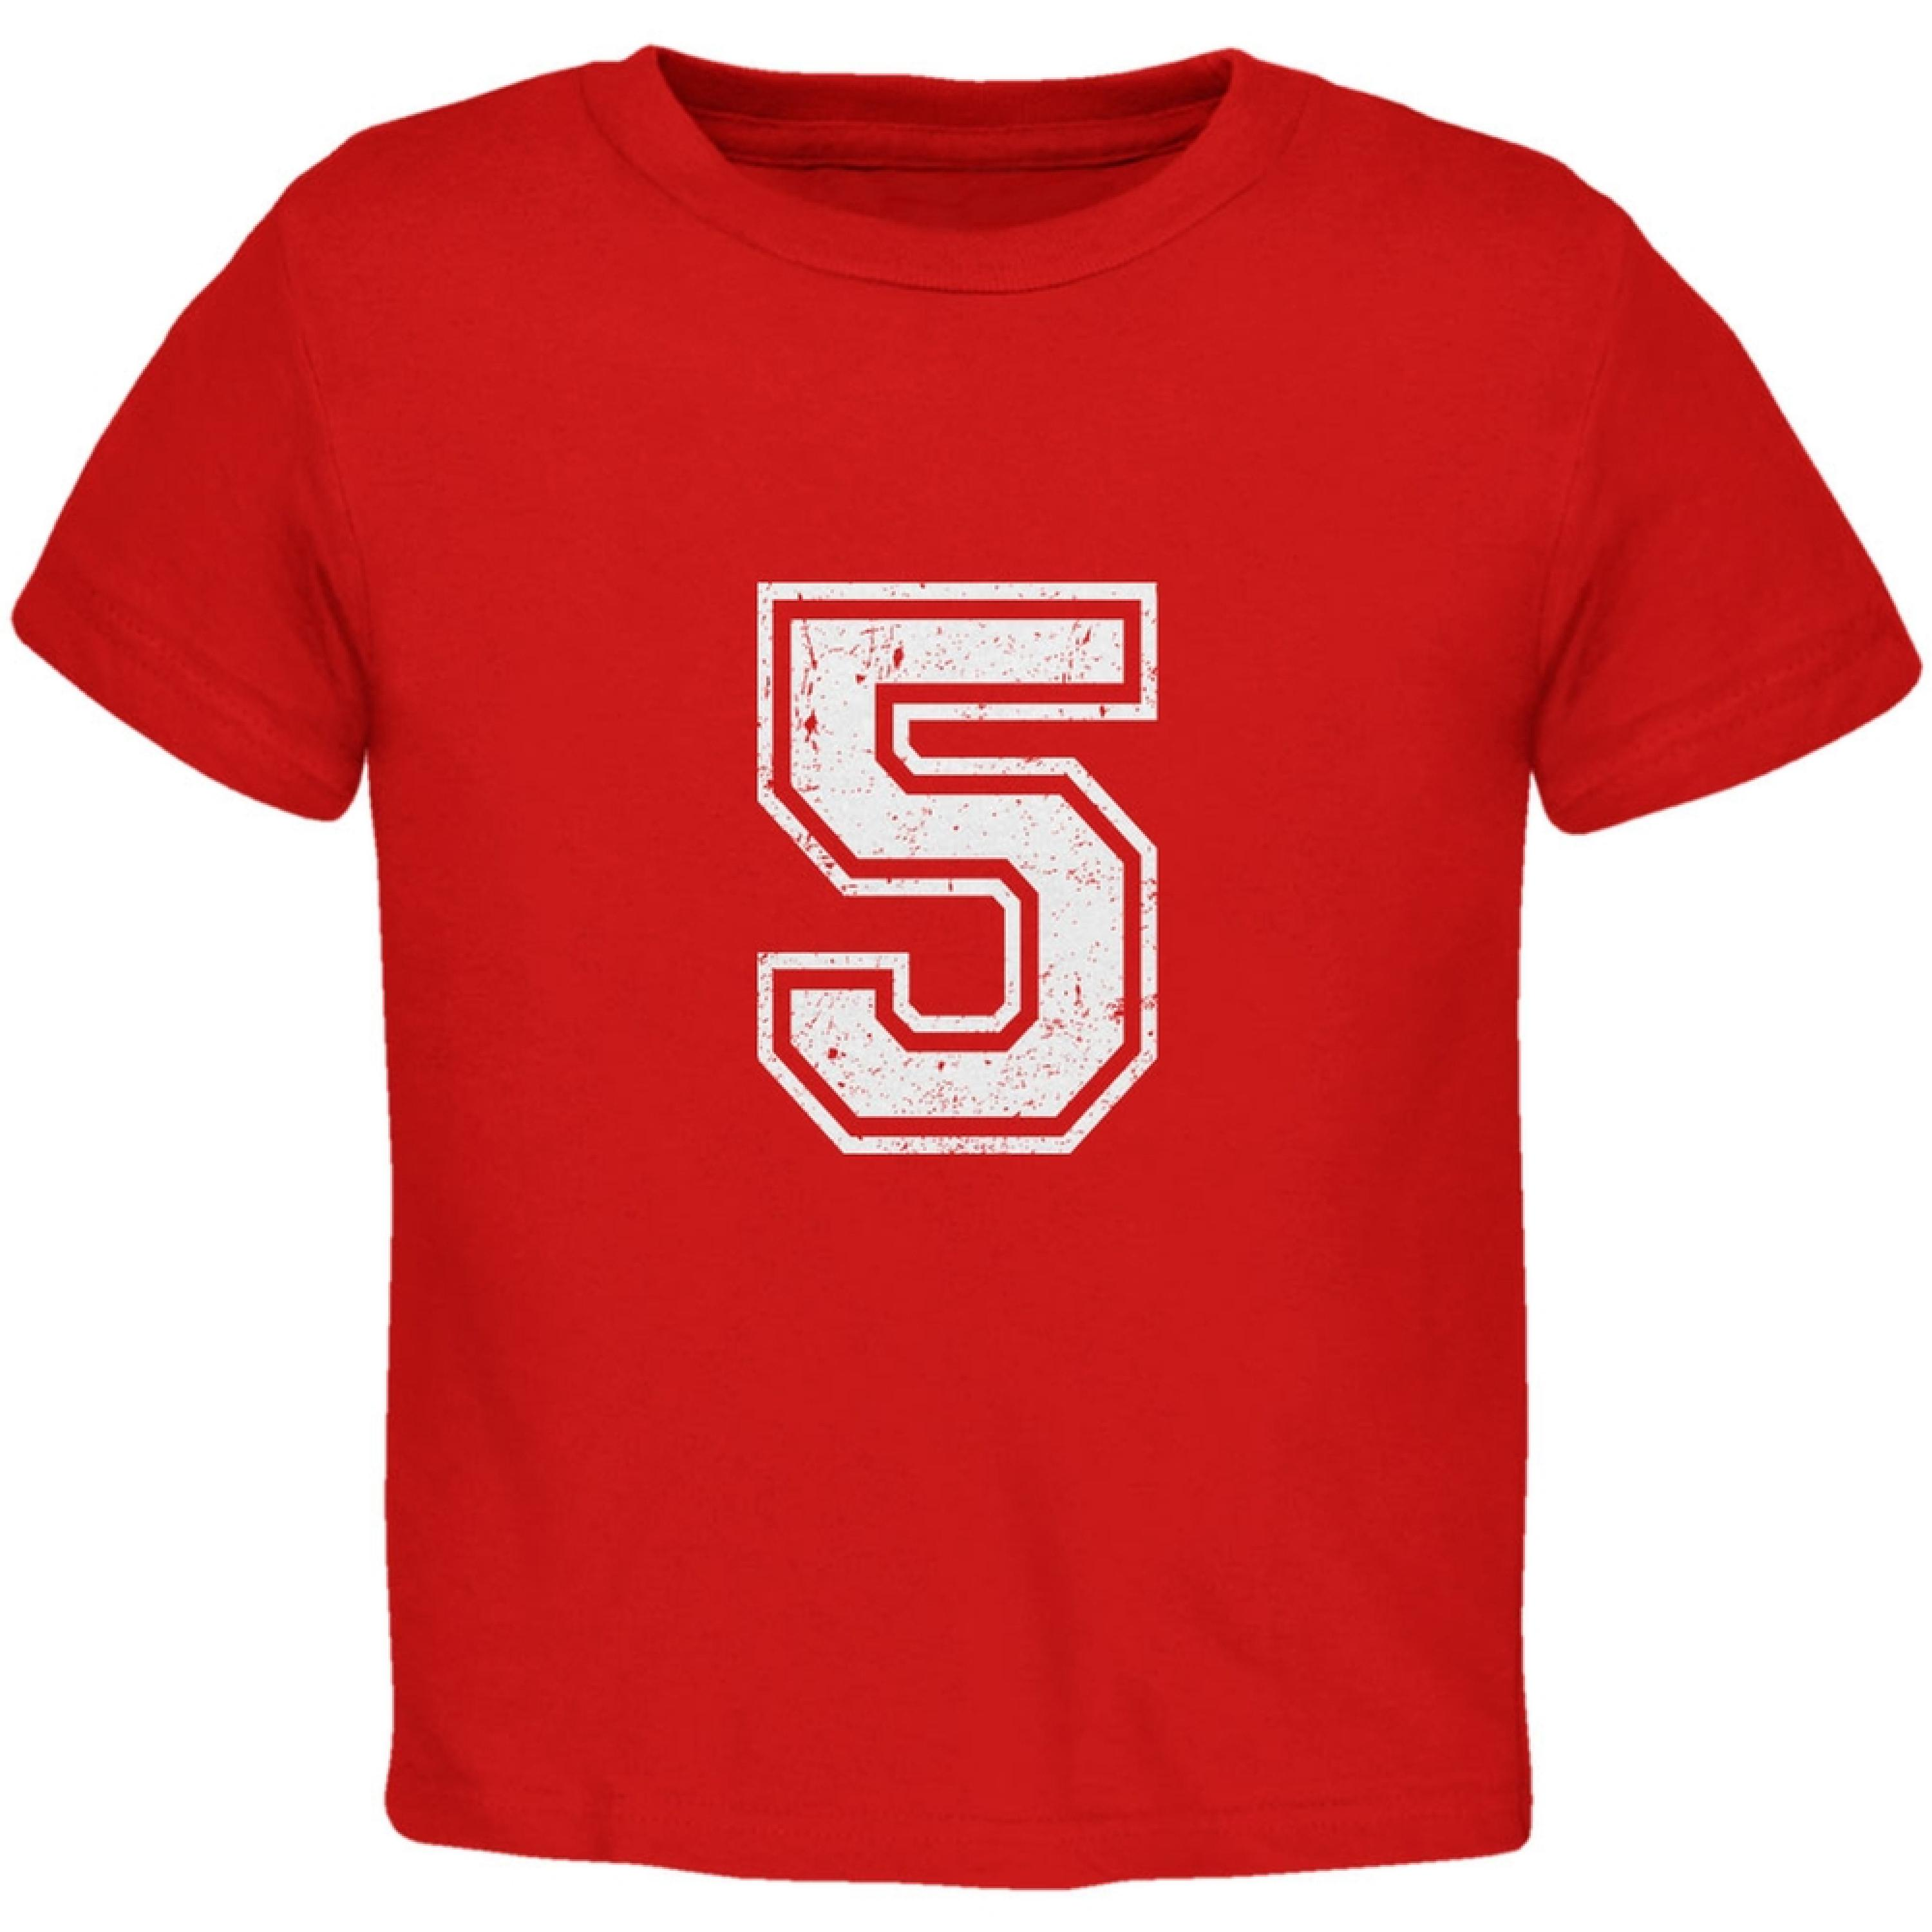 Birthday Kid Jersey 5 5th Fifth Red Toddler T-Shirt